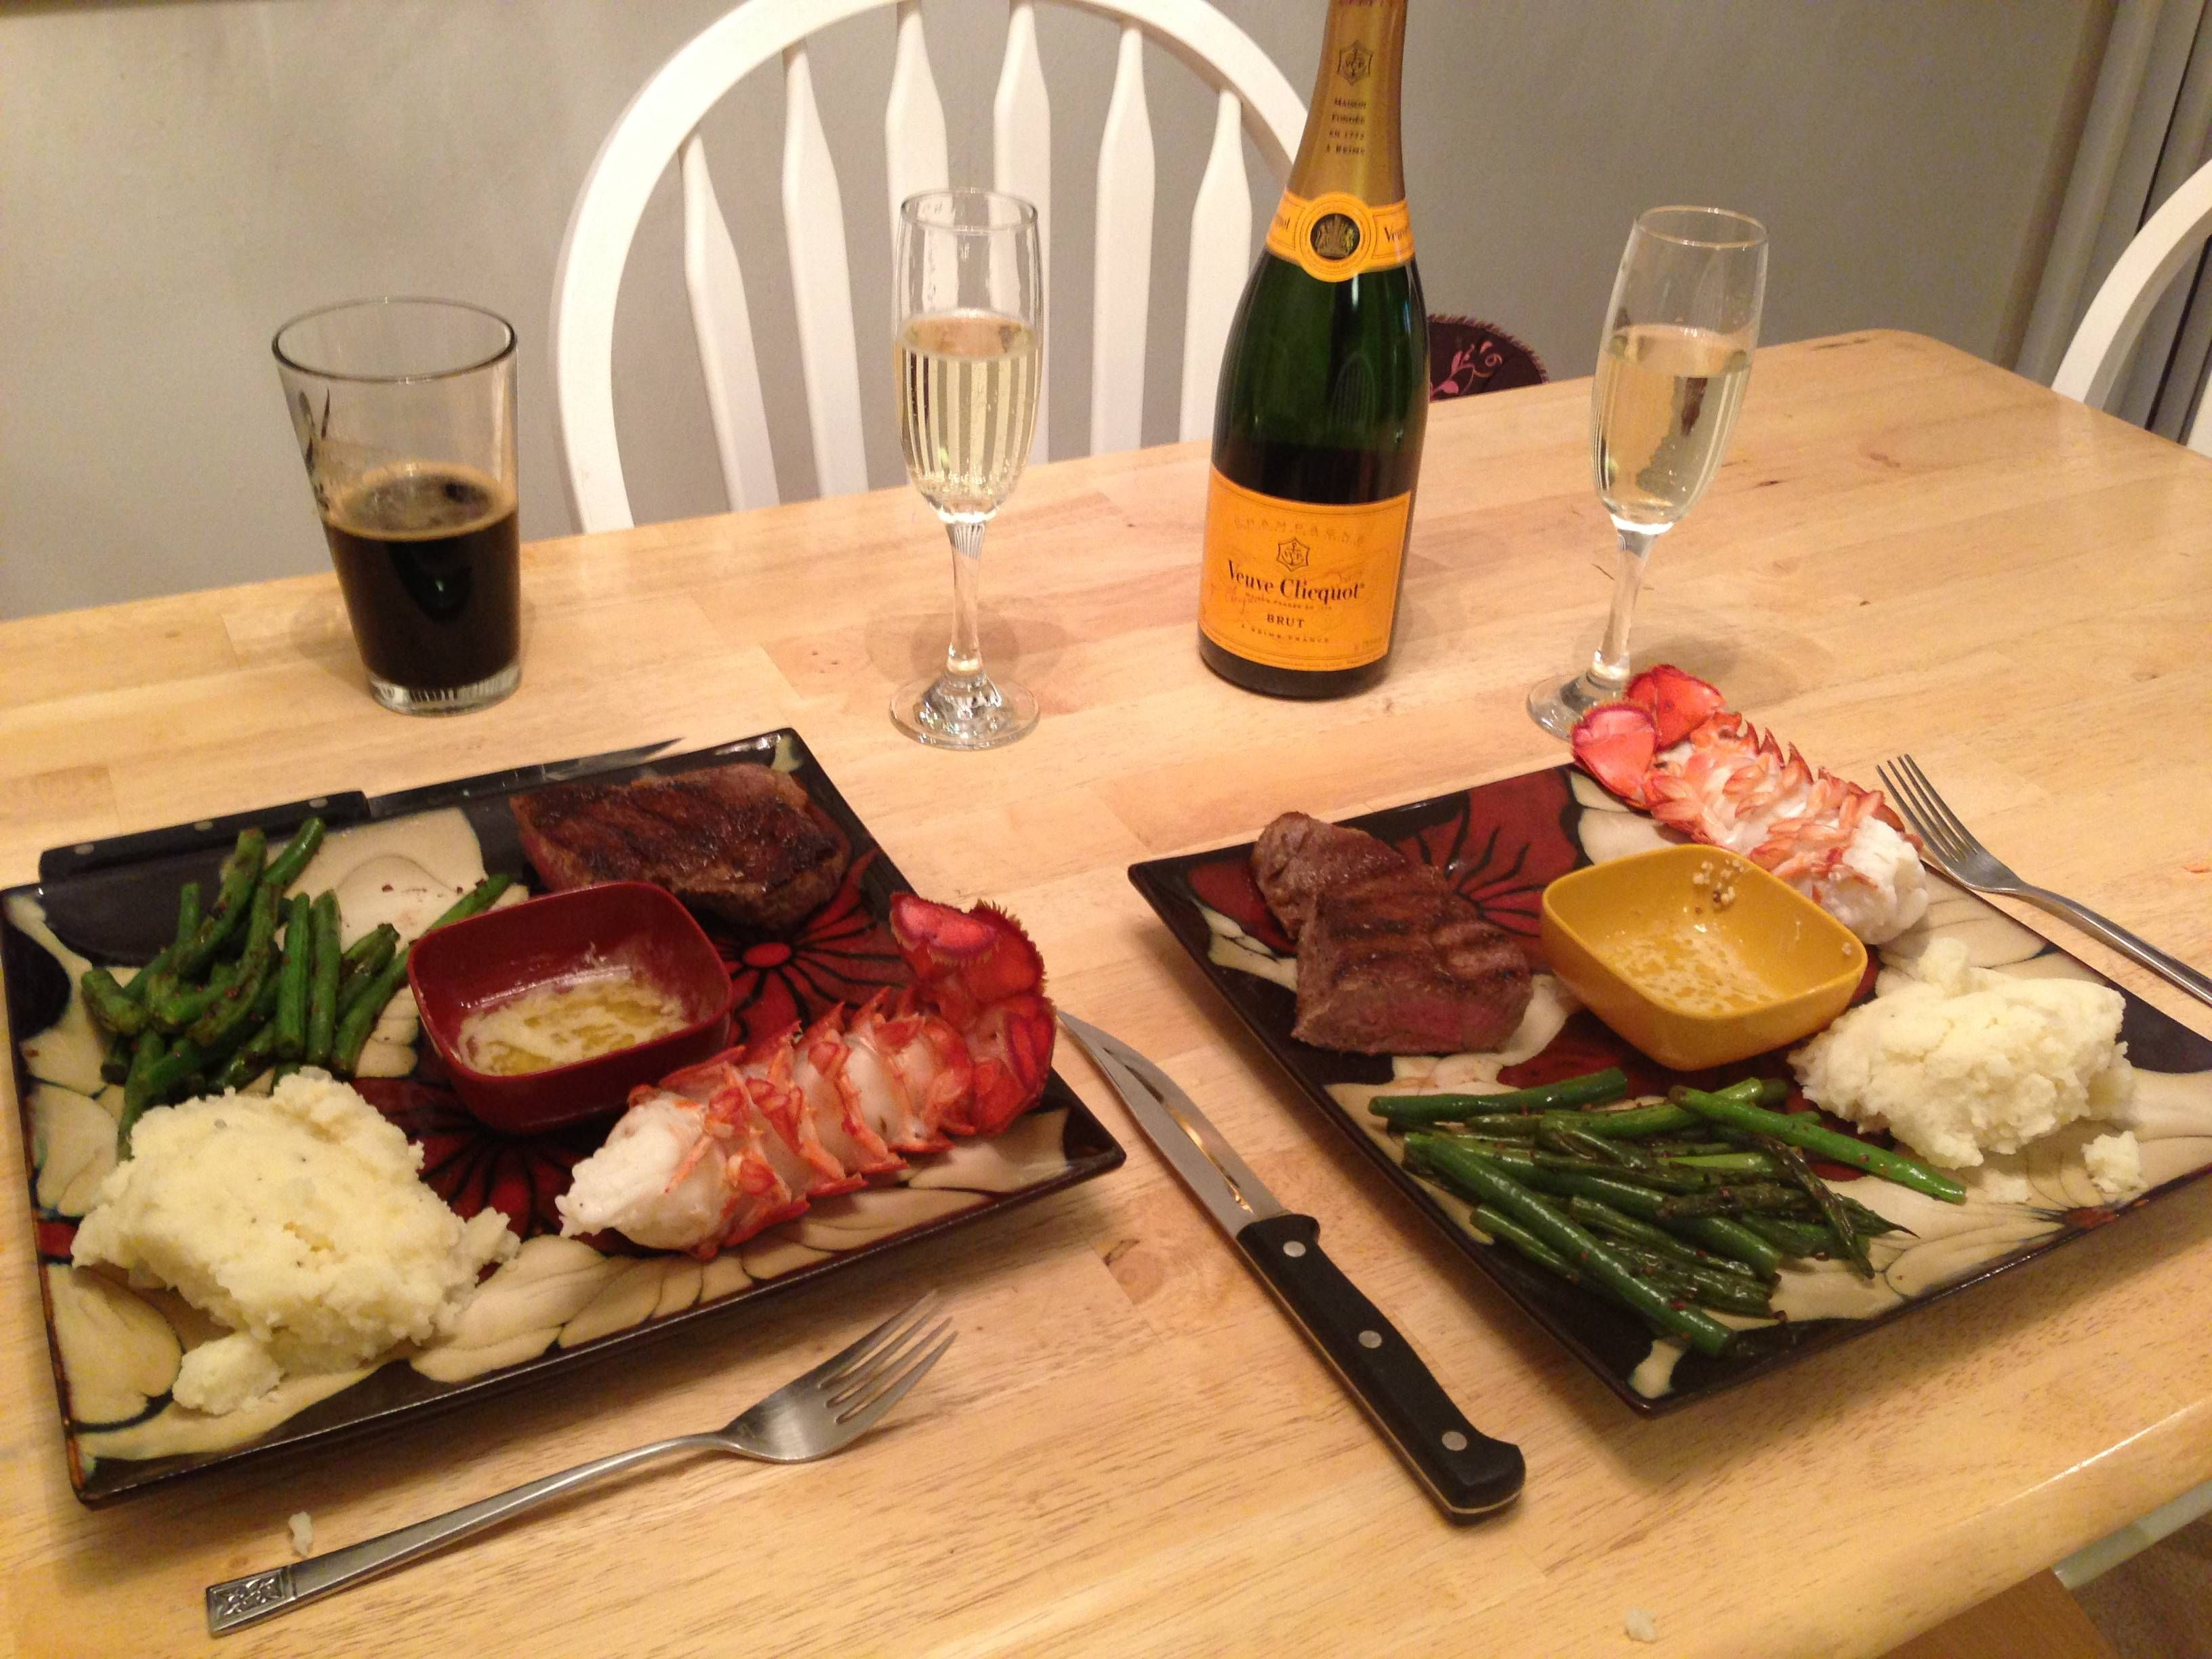 Home cooked dinner date ideas